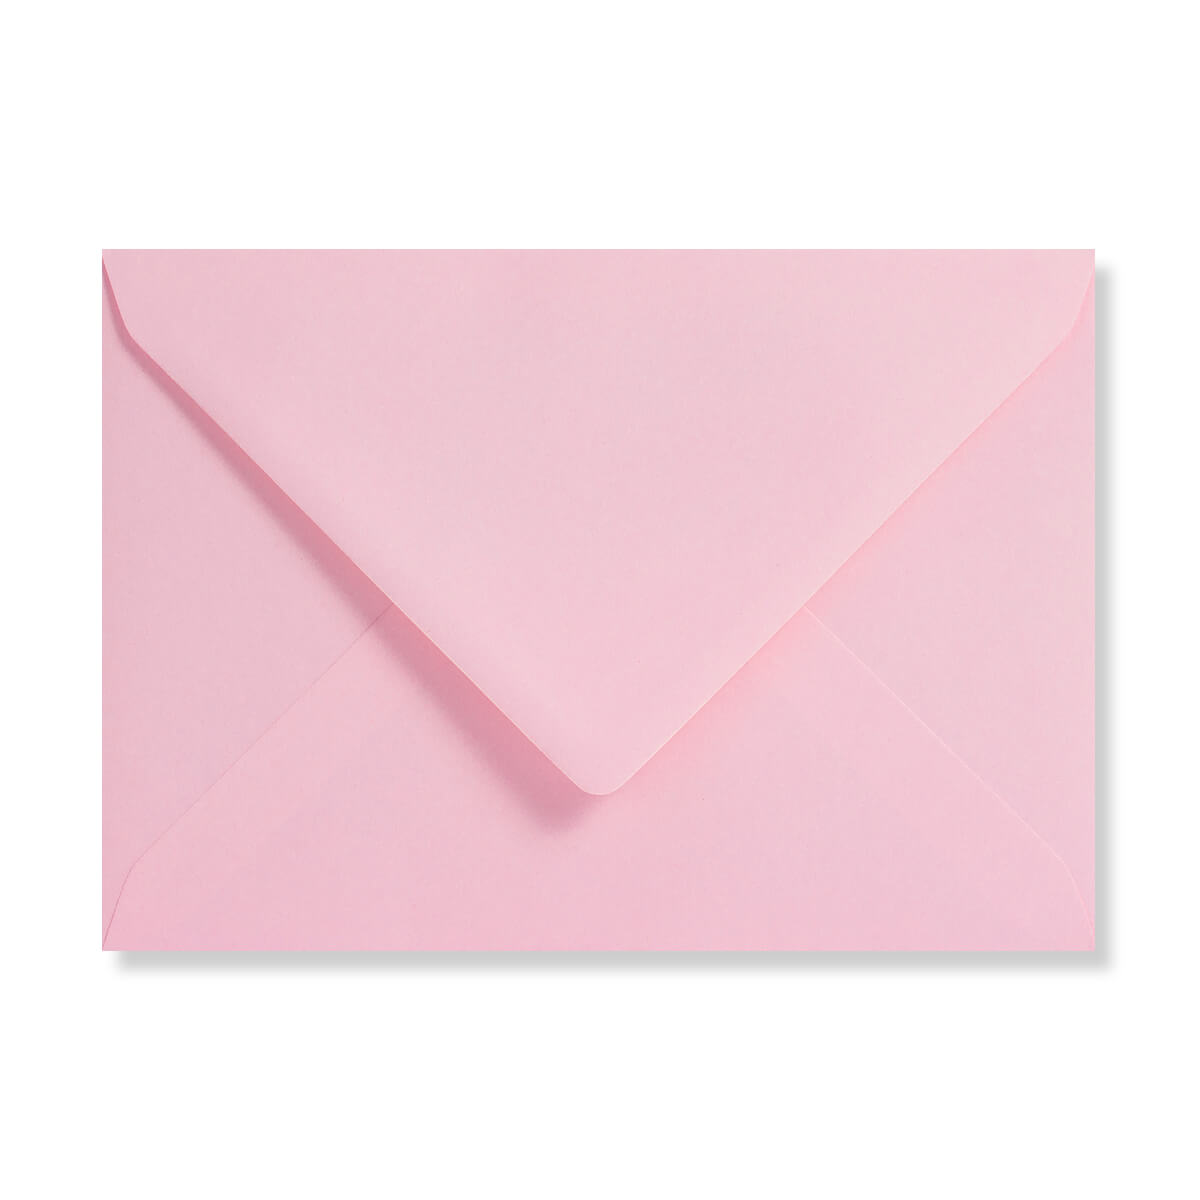 PALE PINK 152 x 216mm ENVELOPES 120GSM